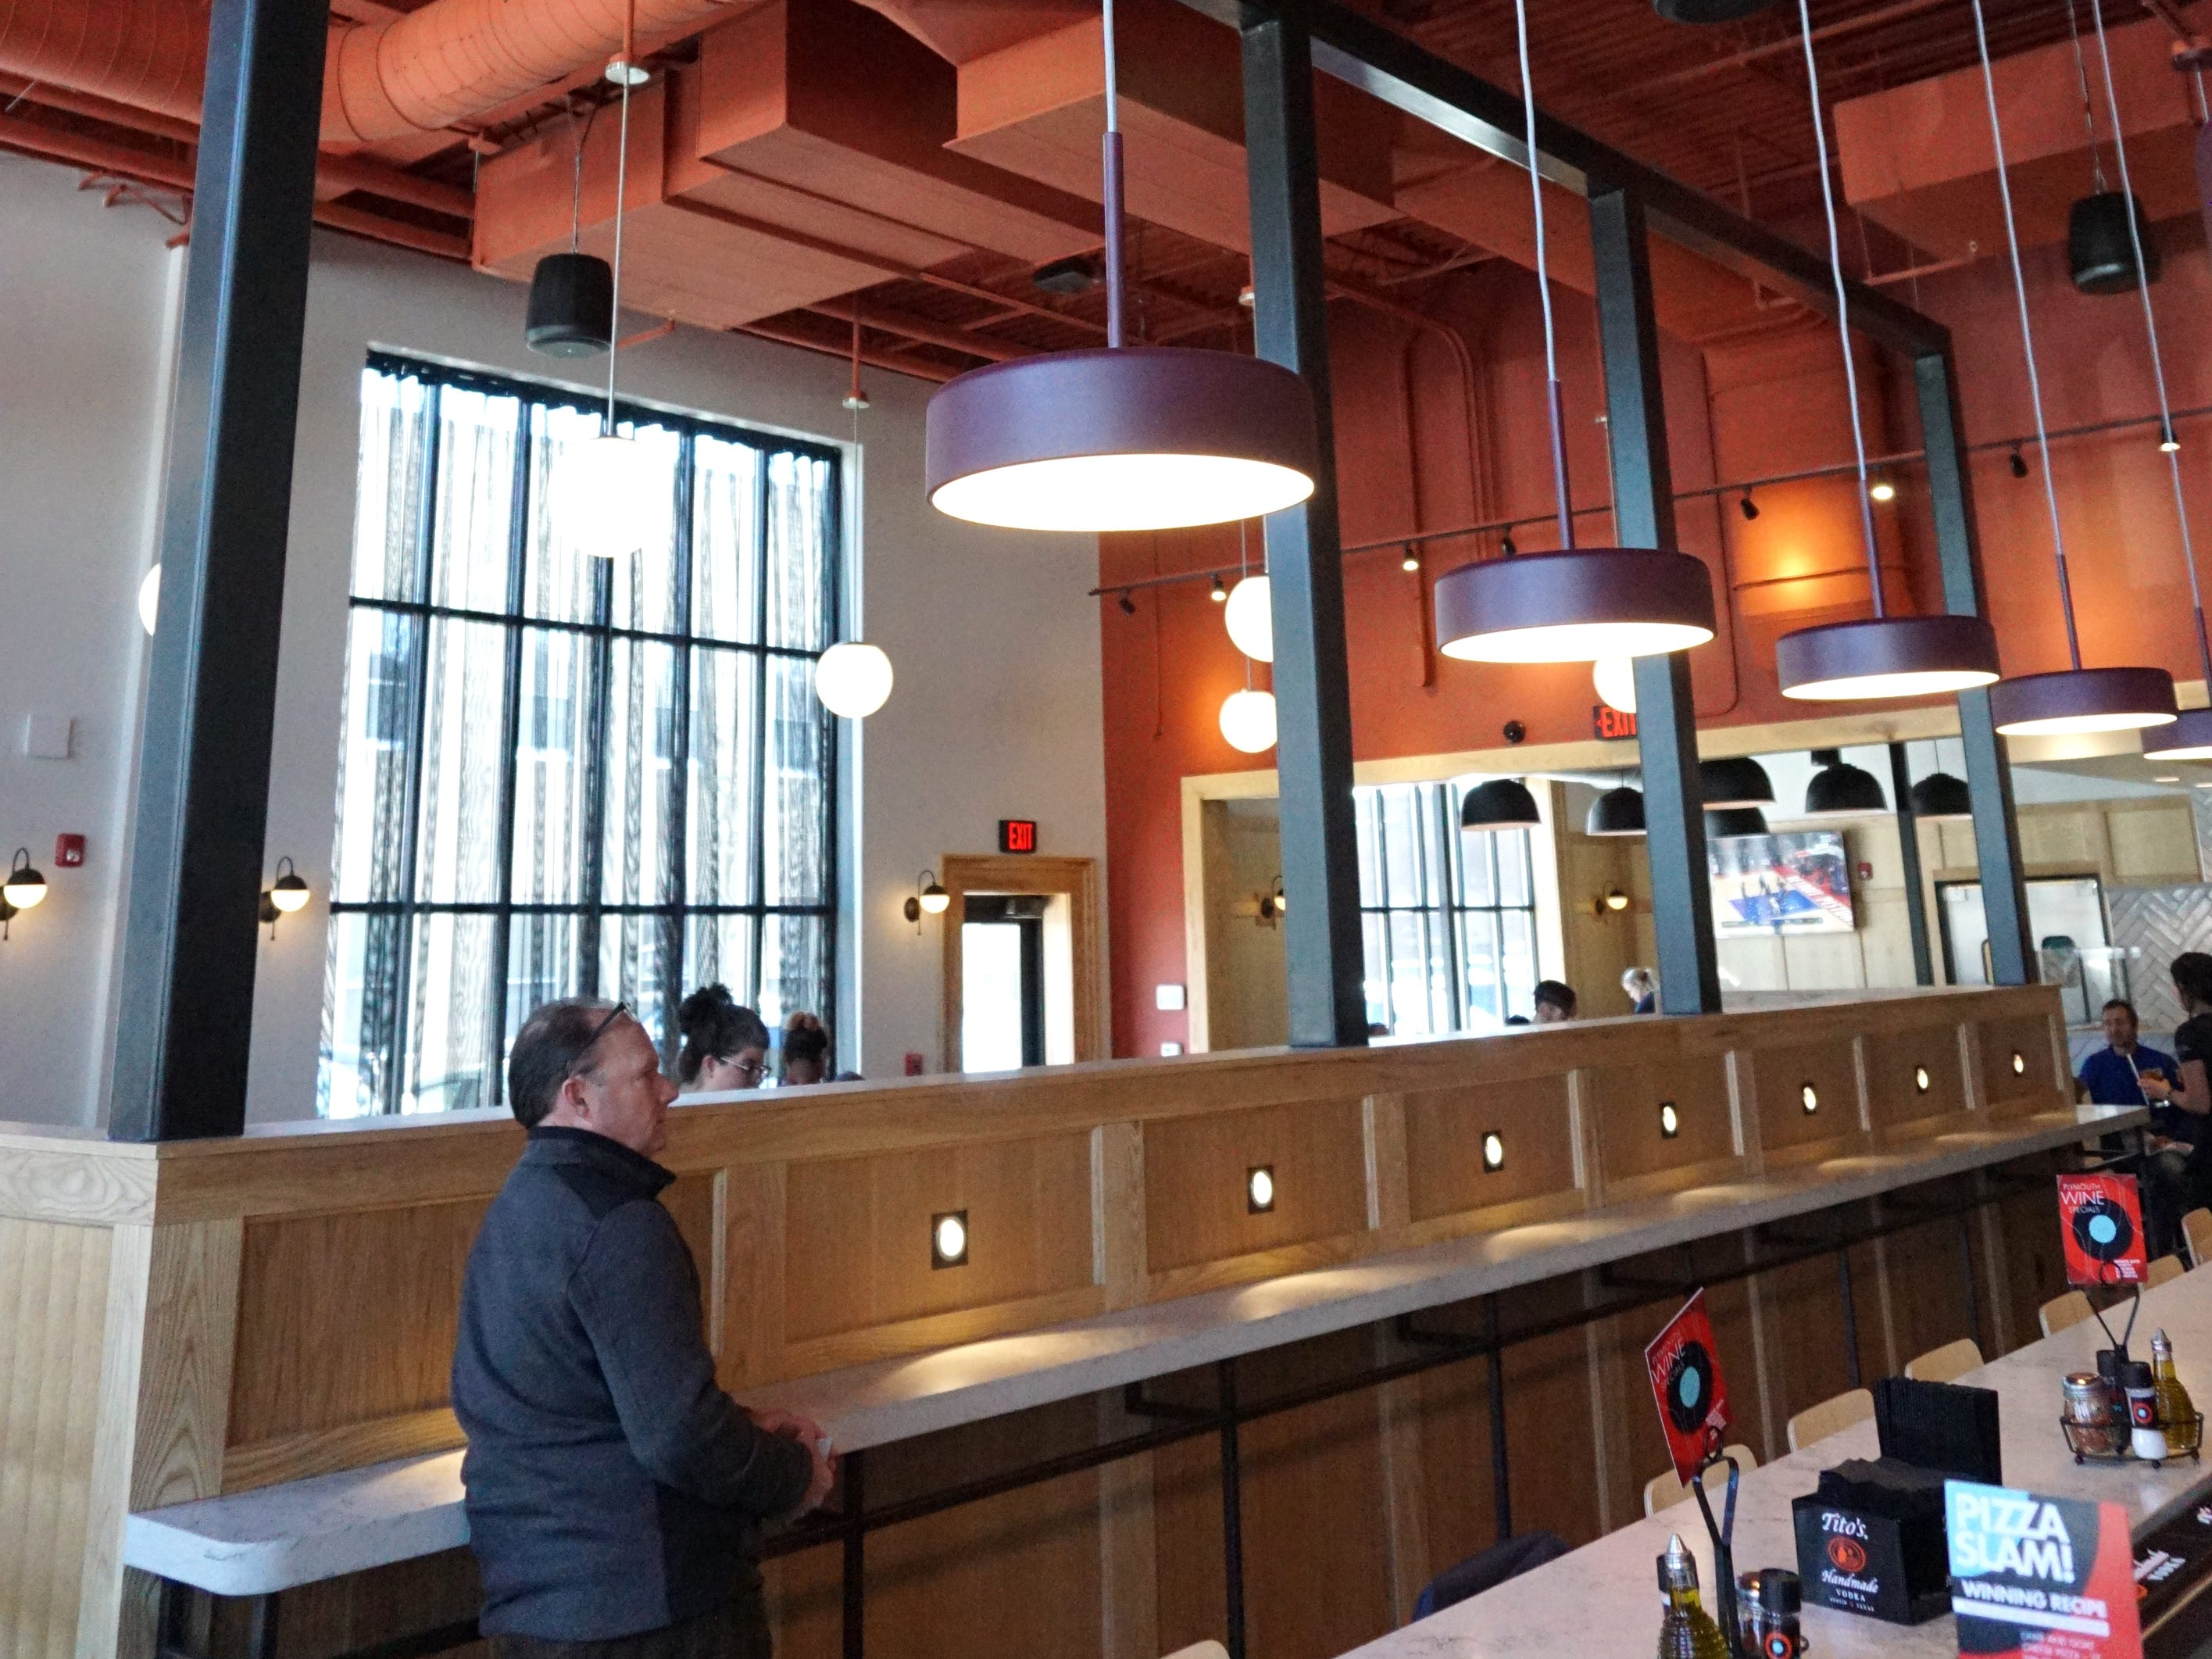 Bigalora has high ceilings at its downtown Plymouth location.